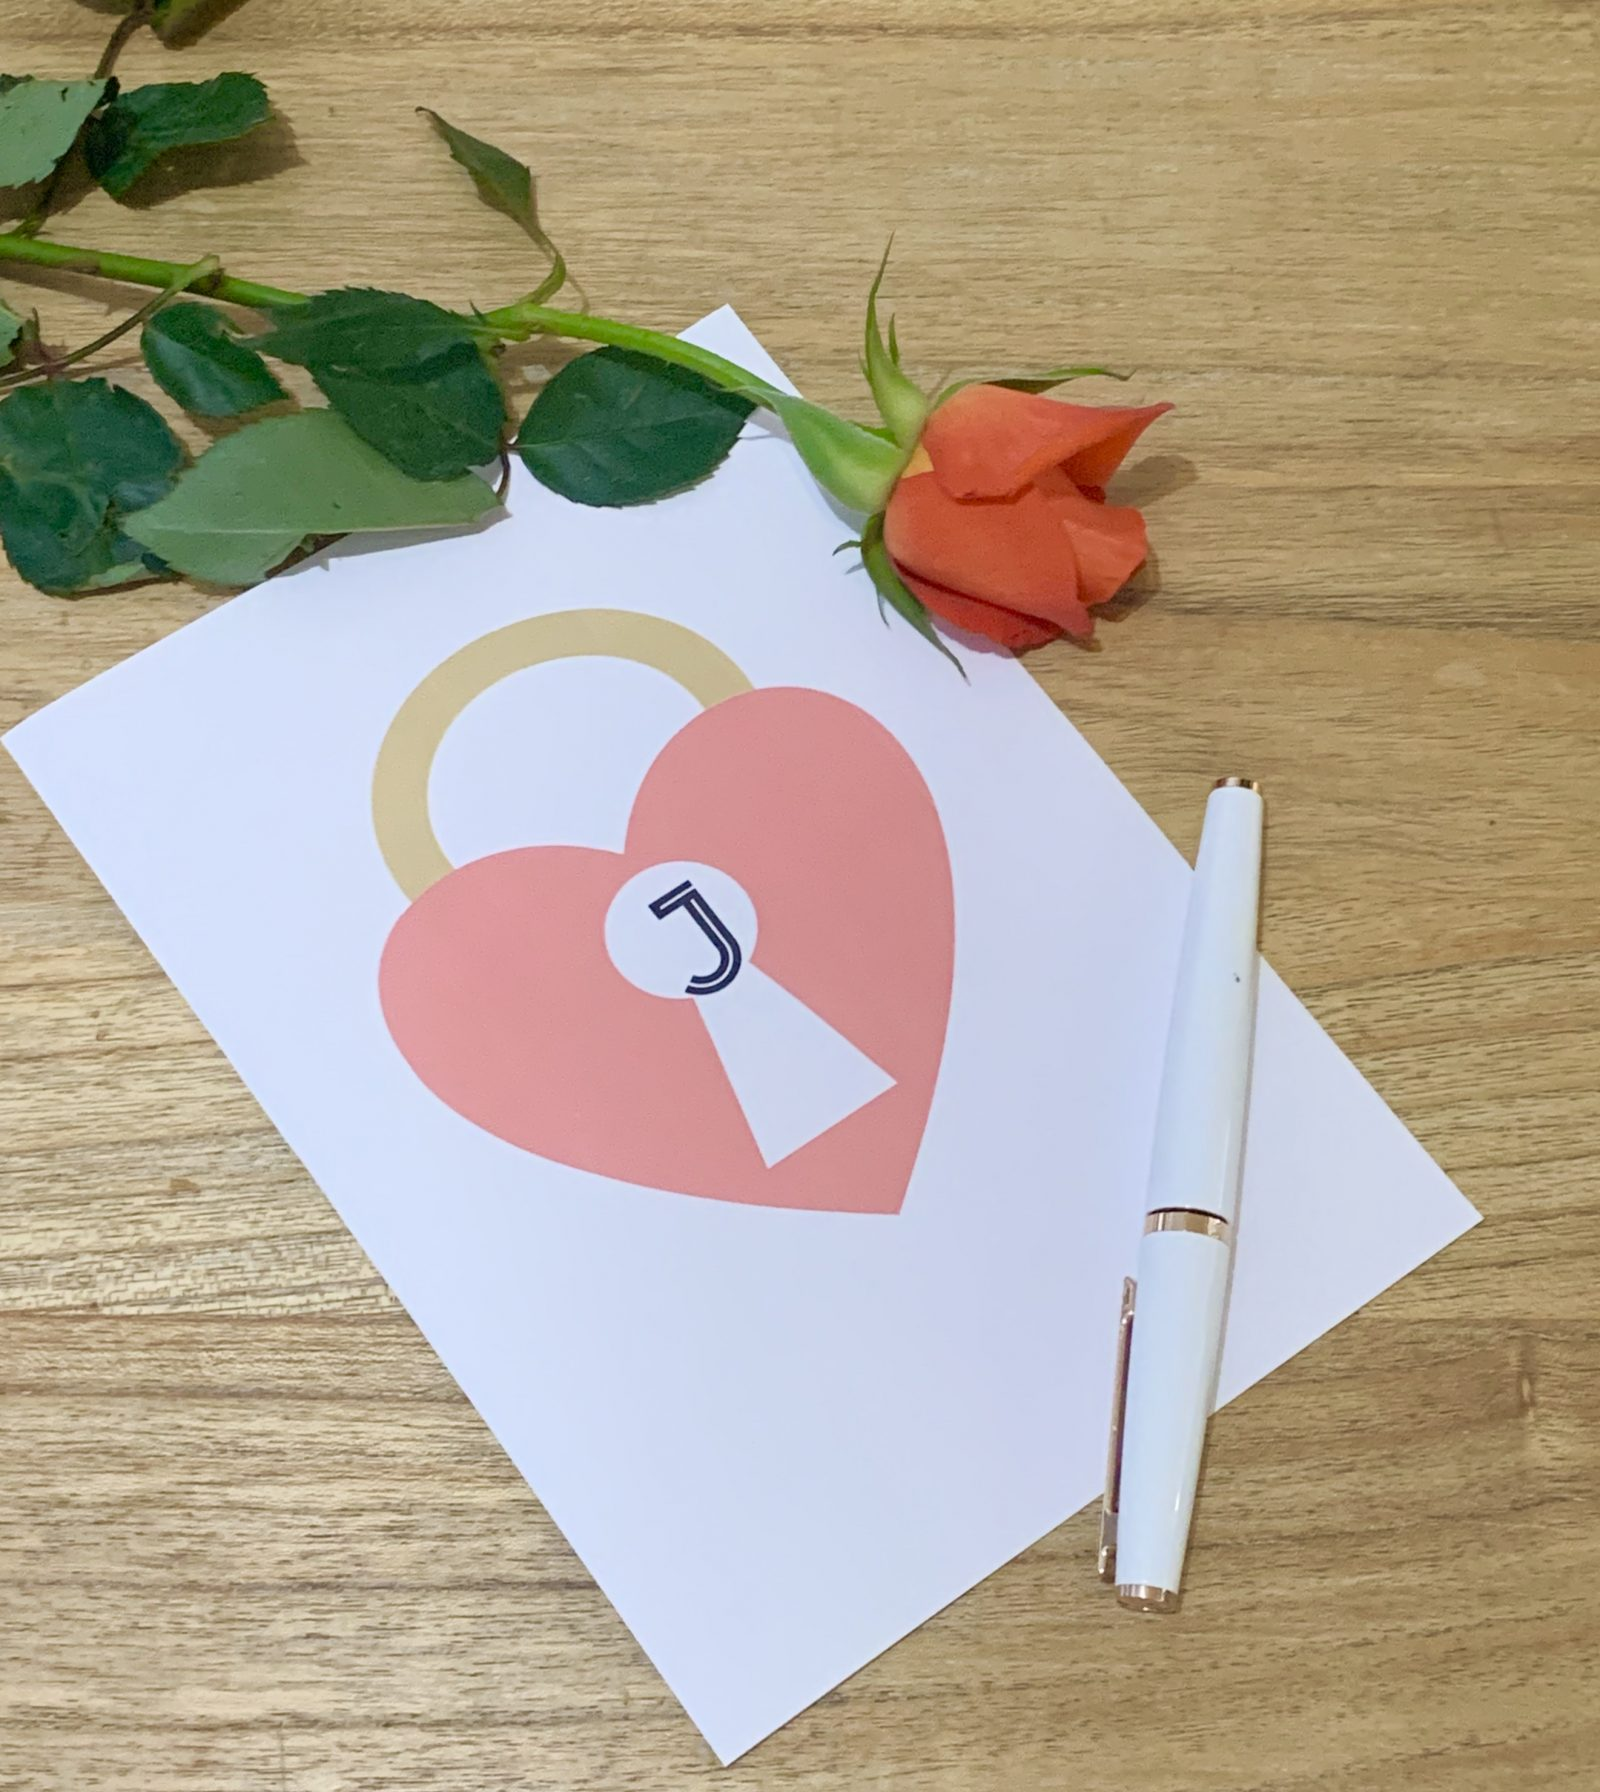 Designing a Valentine's card with Monogram Maker